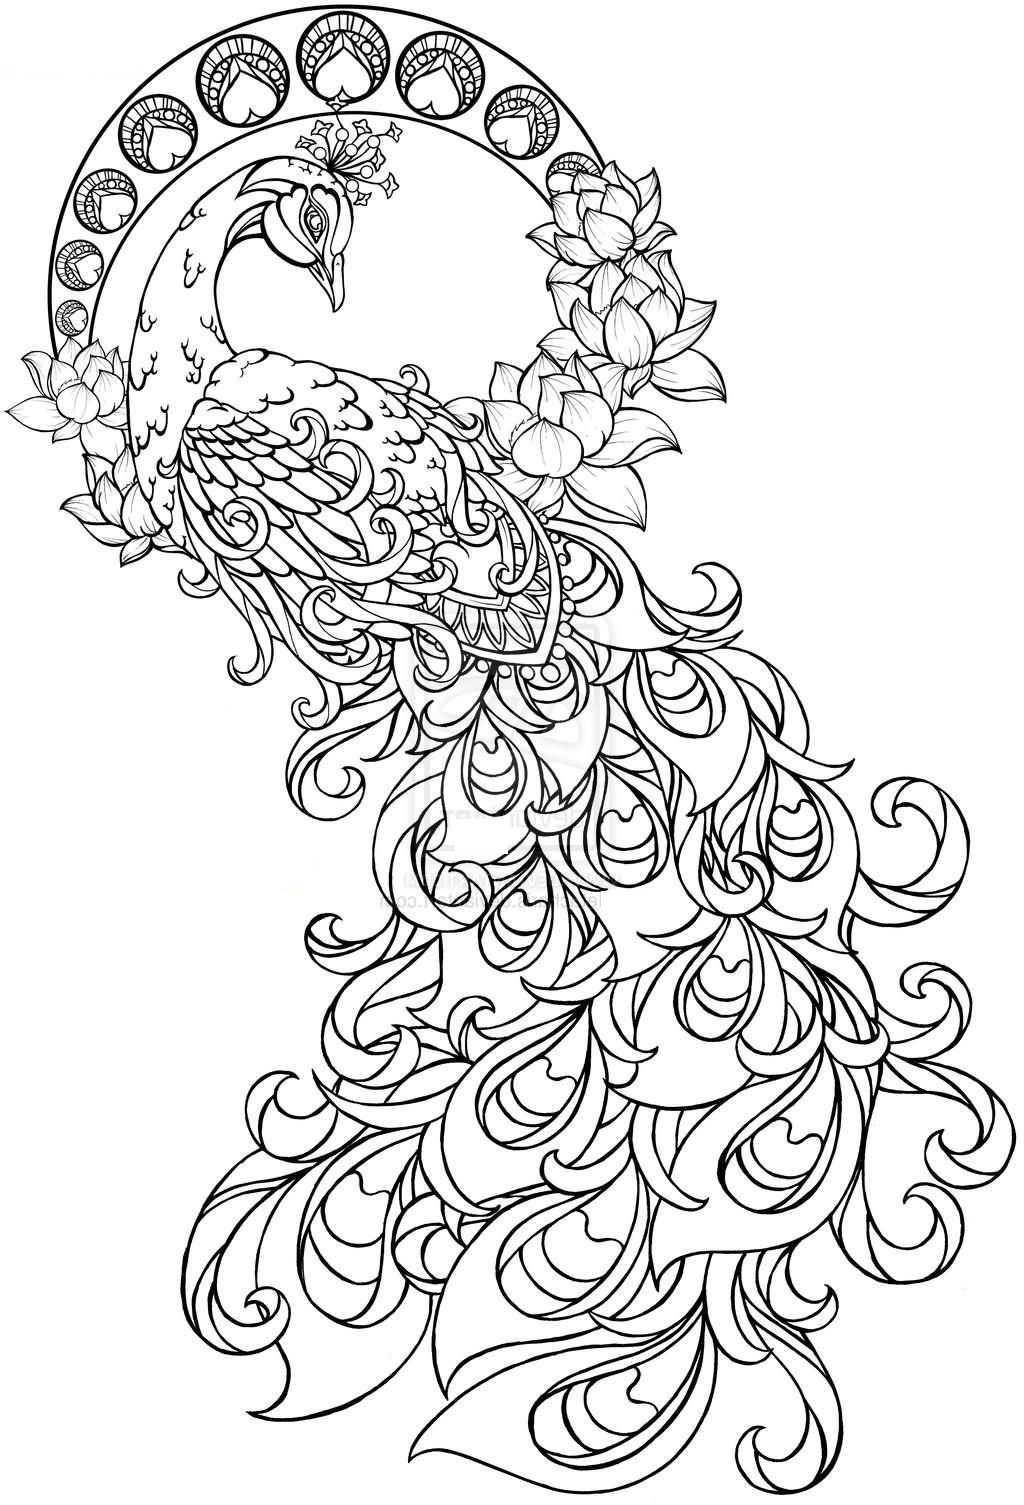 Paisley pattern tattoo design to coloring page kolorowanki